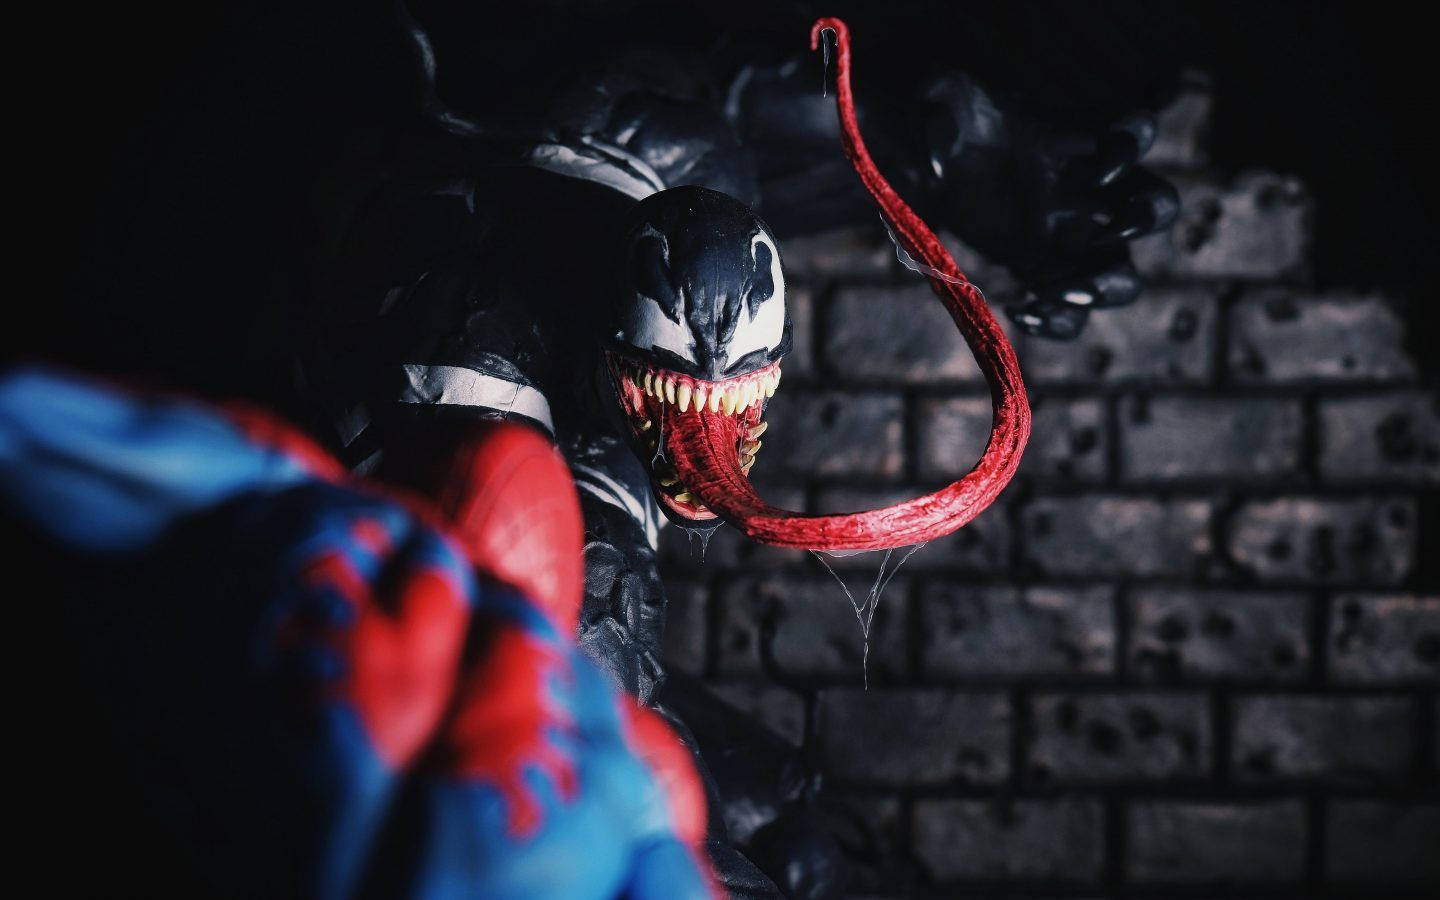 Venom Hd Wallpaper Spiderman Art Spiderman Artwork Marvel Comics Wallpaper